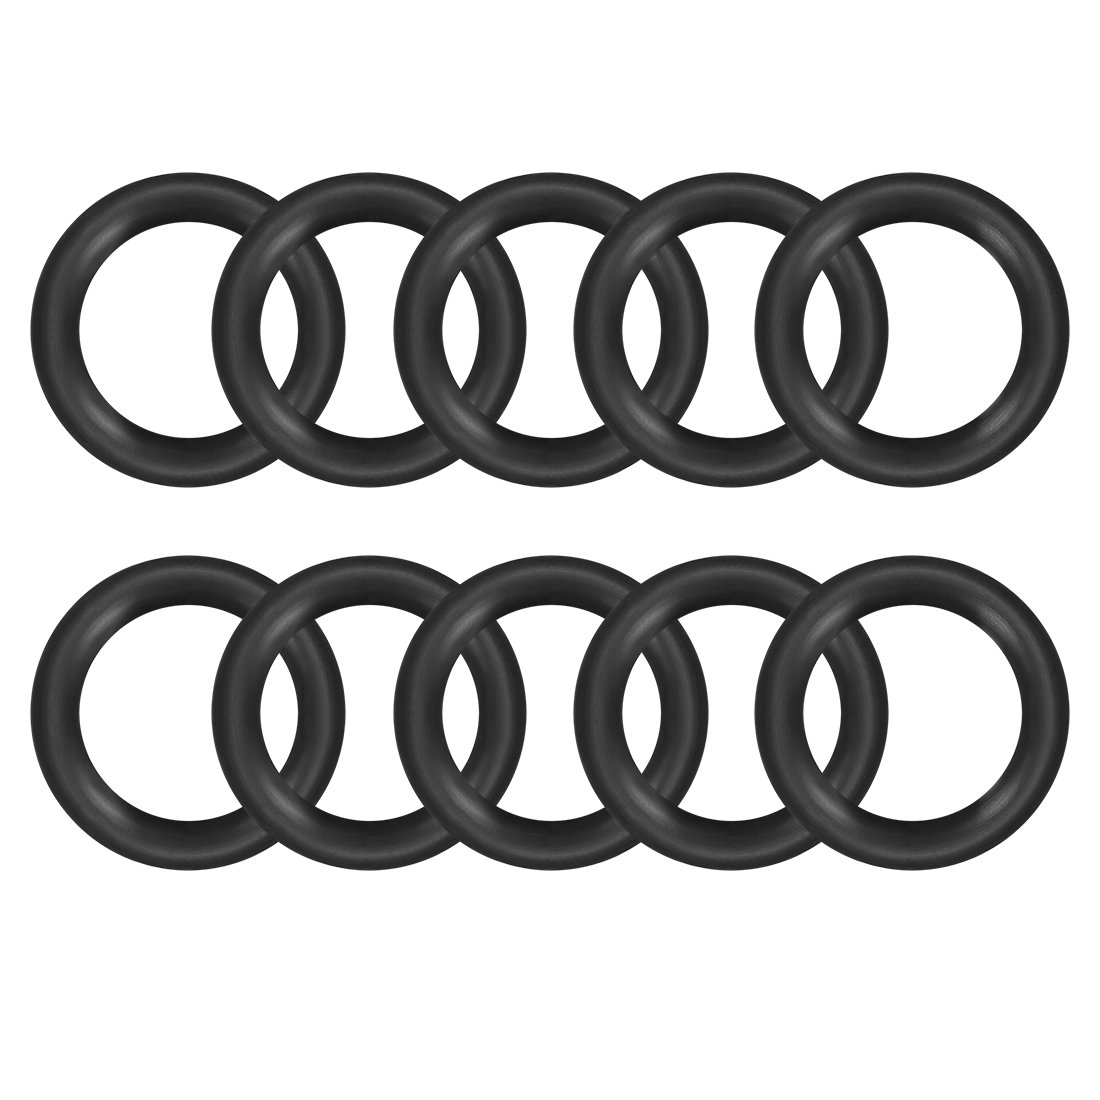 30mm OD 22mm Inner Diameter Round Seal Gasket Pack of 10 uxcell O-Rings Nitrile Rubber 4mm Width